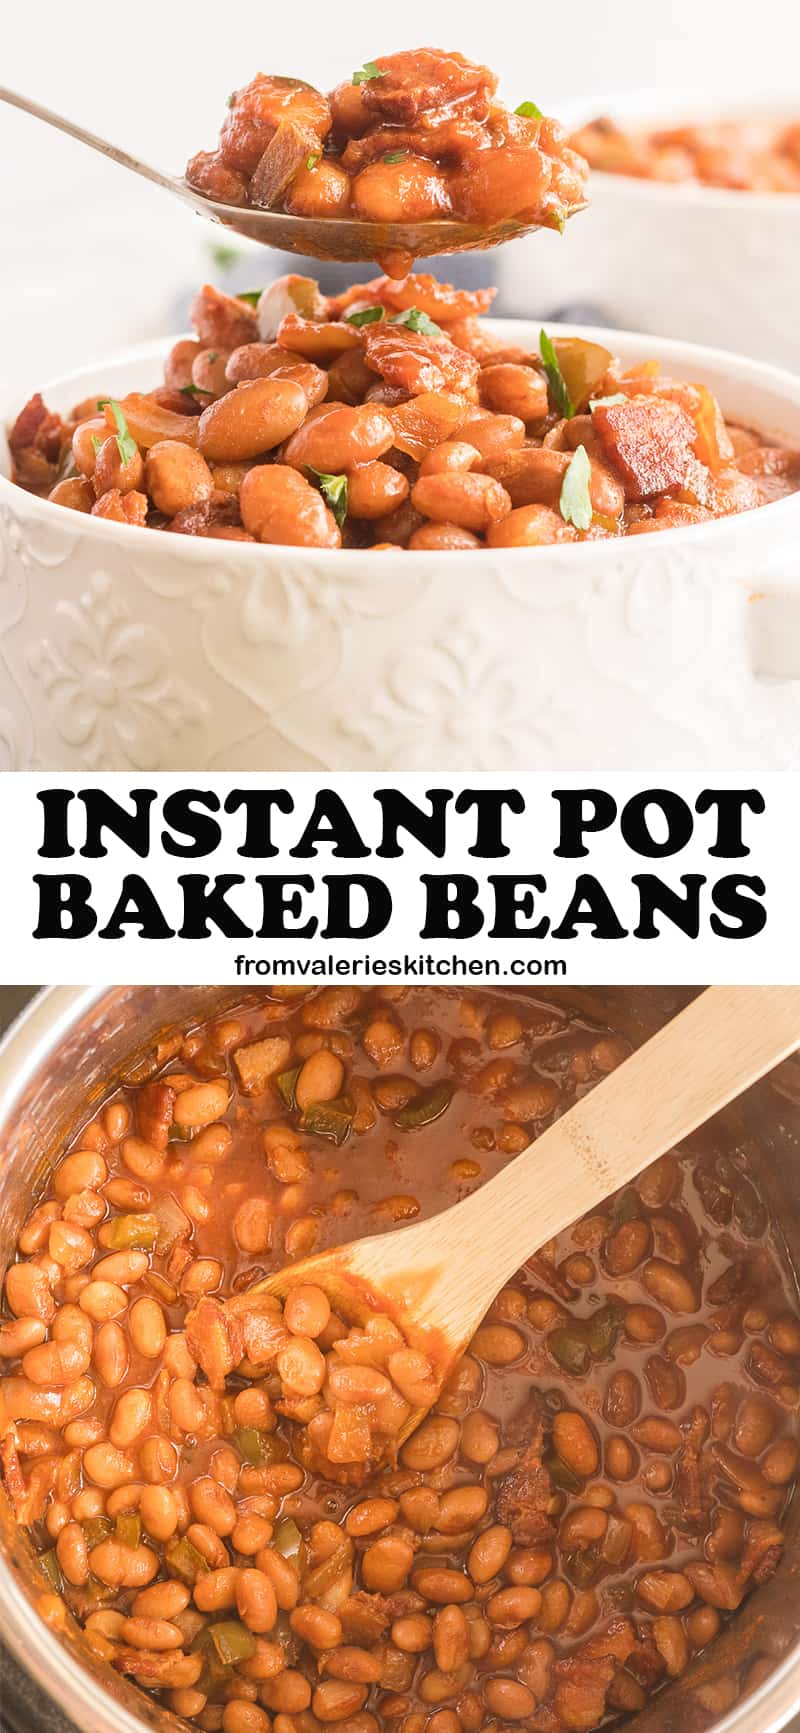 A two image vertical collage of Instant Pot Baked Beans with overlay text.